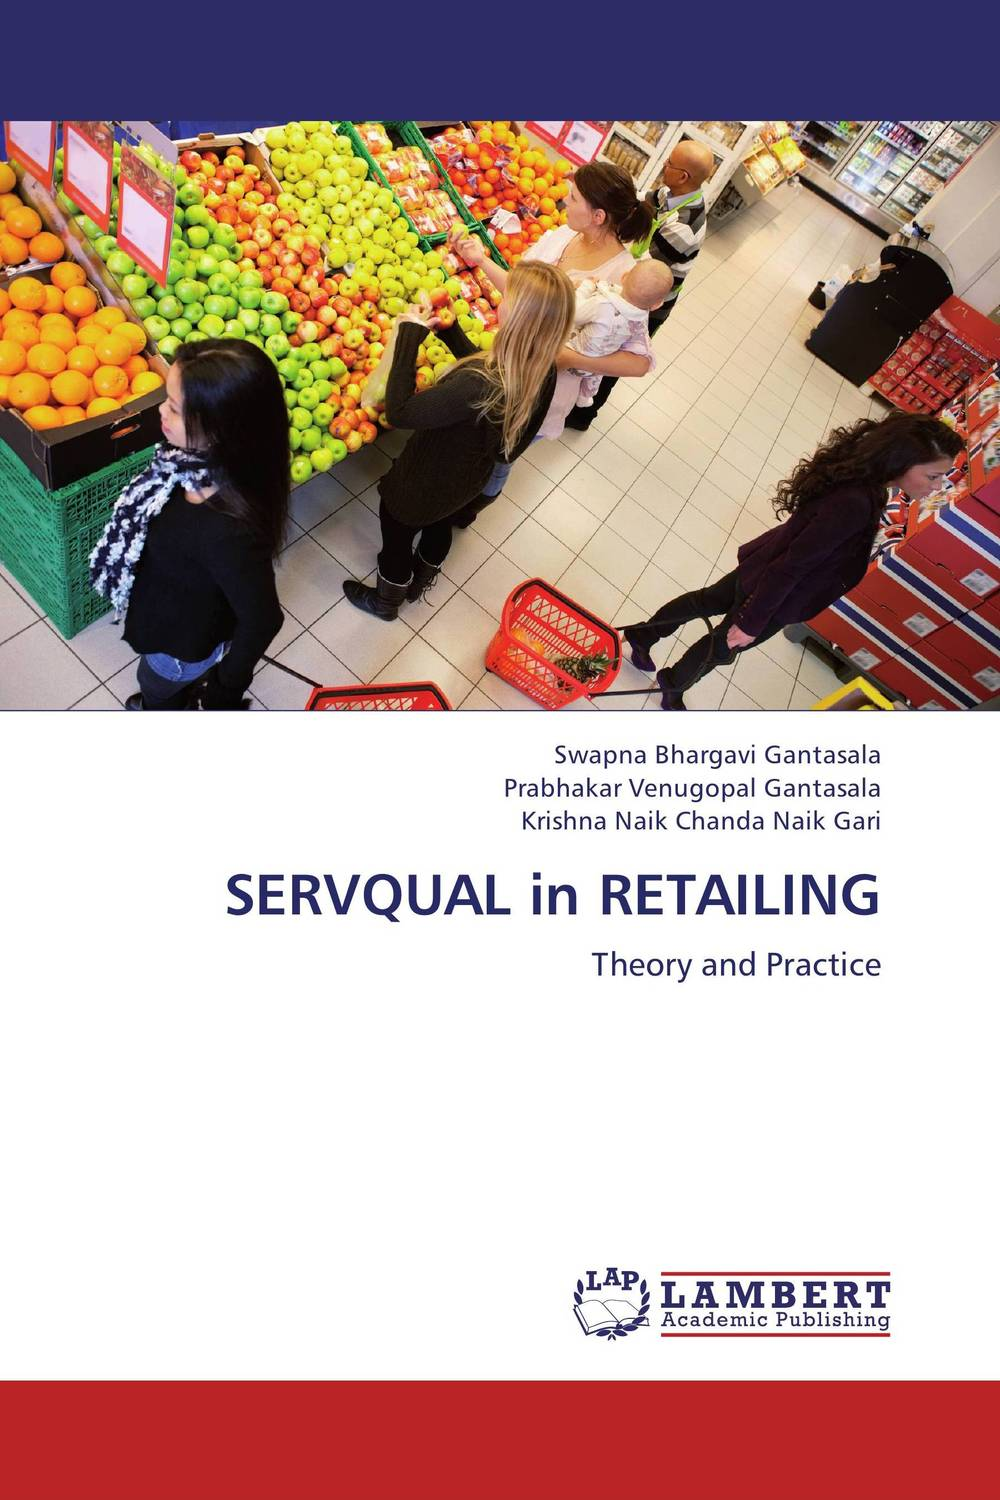 SERVQUAL in RETAILING michel chevalier luxury retail management how the world s top brands provide quality product and service support